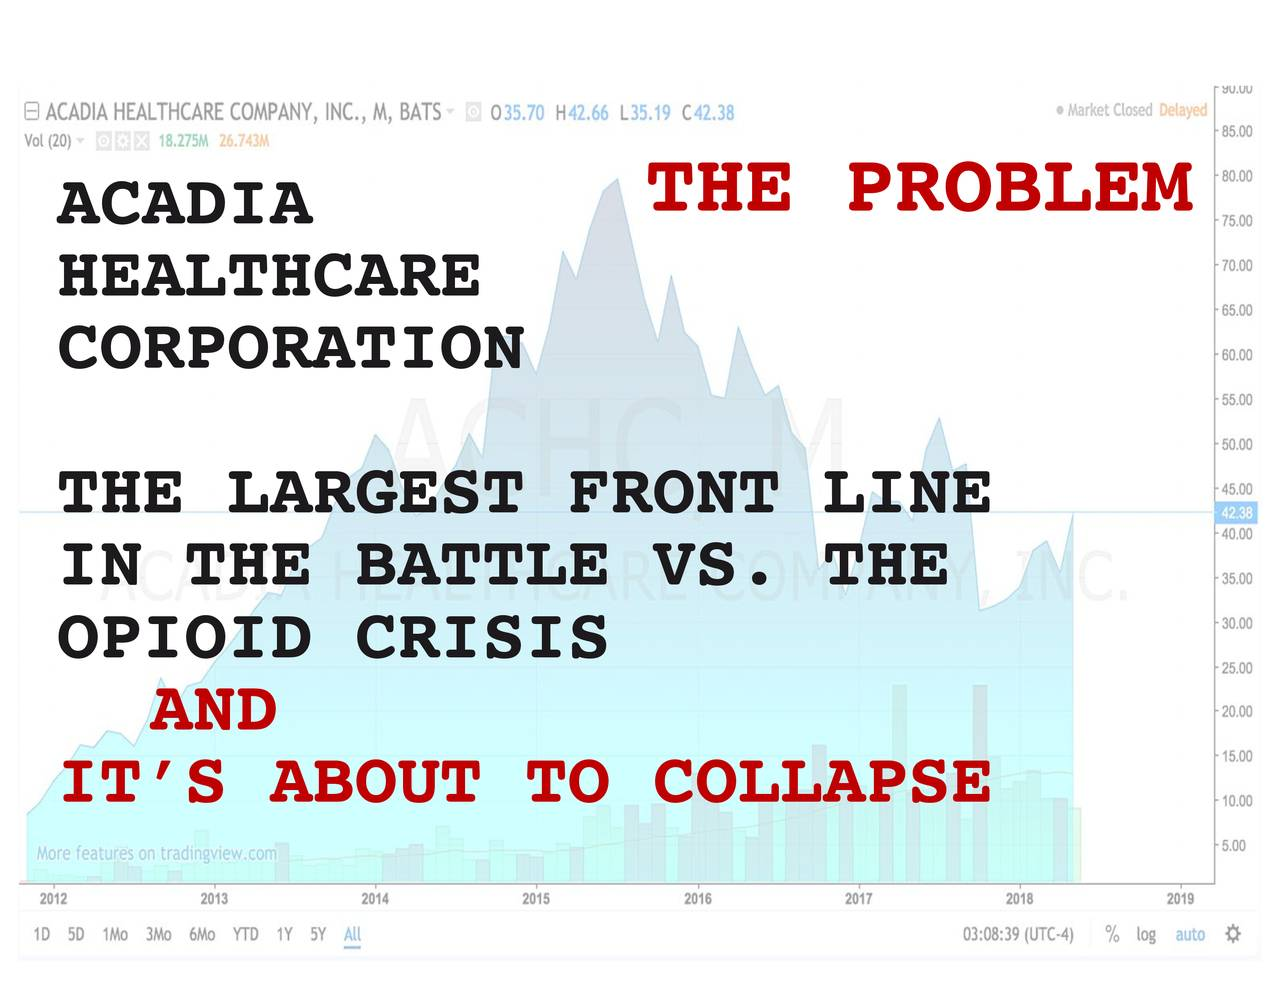 HEALTHCARE CORPORATION THE LARGEST FRONT LINE IN THE BATTLE VS. THE OPIOID CRISIS AND IT'S ABOUT TO COLLAPSE